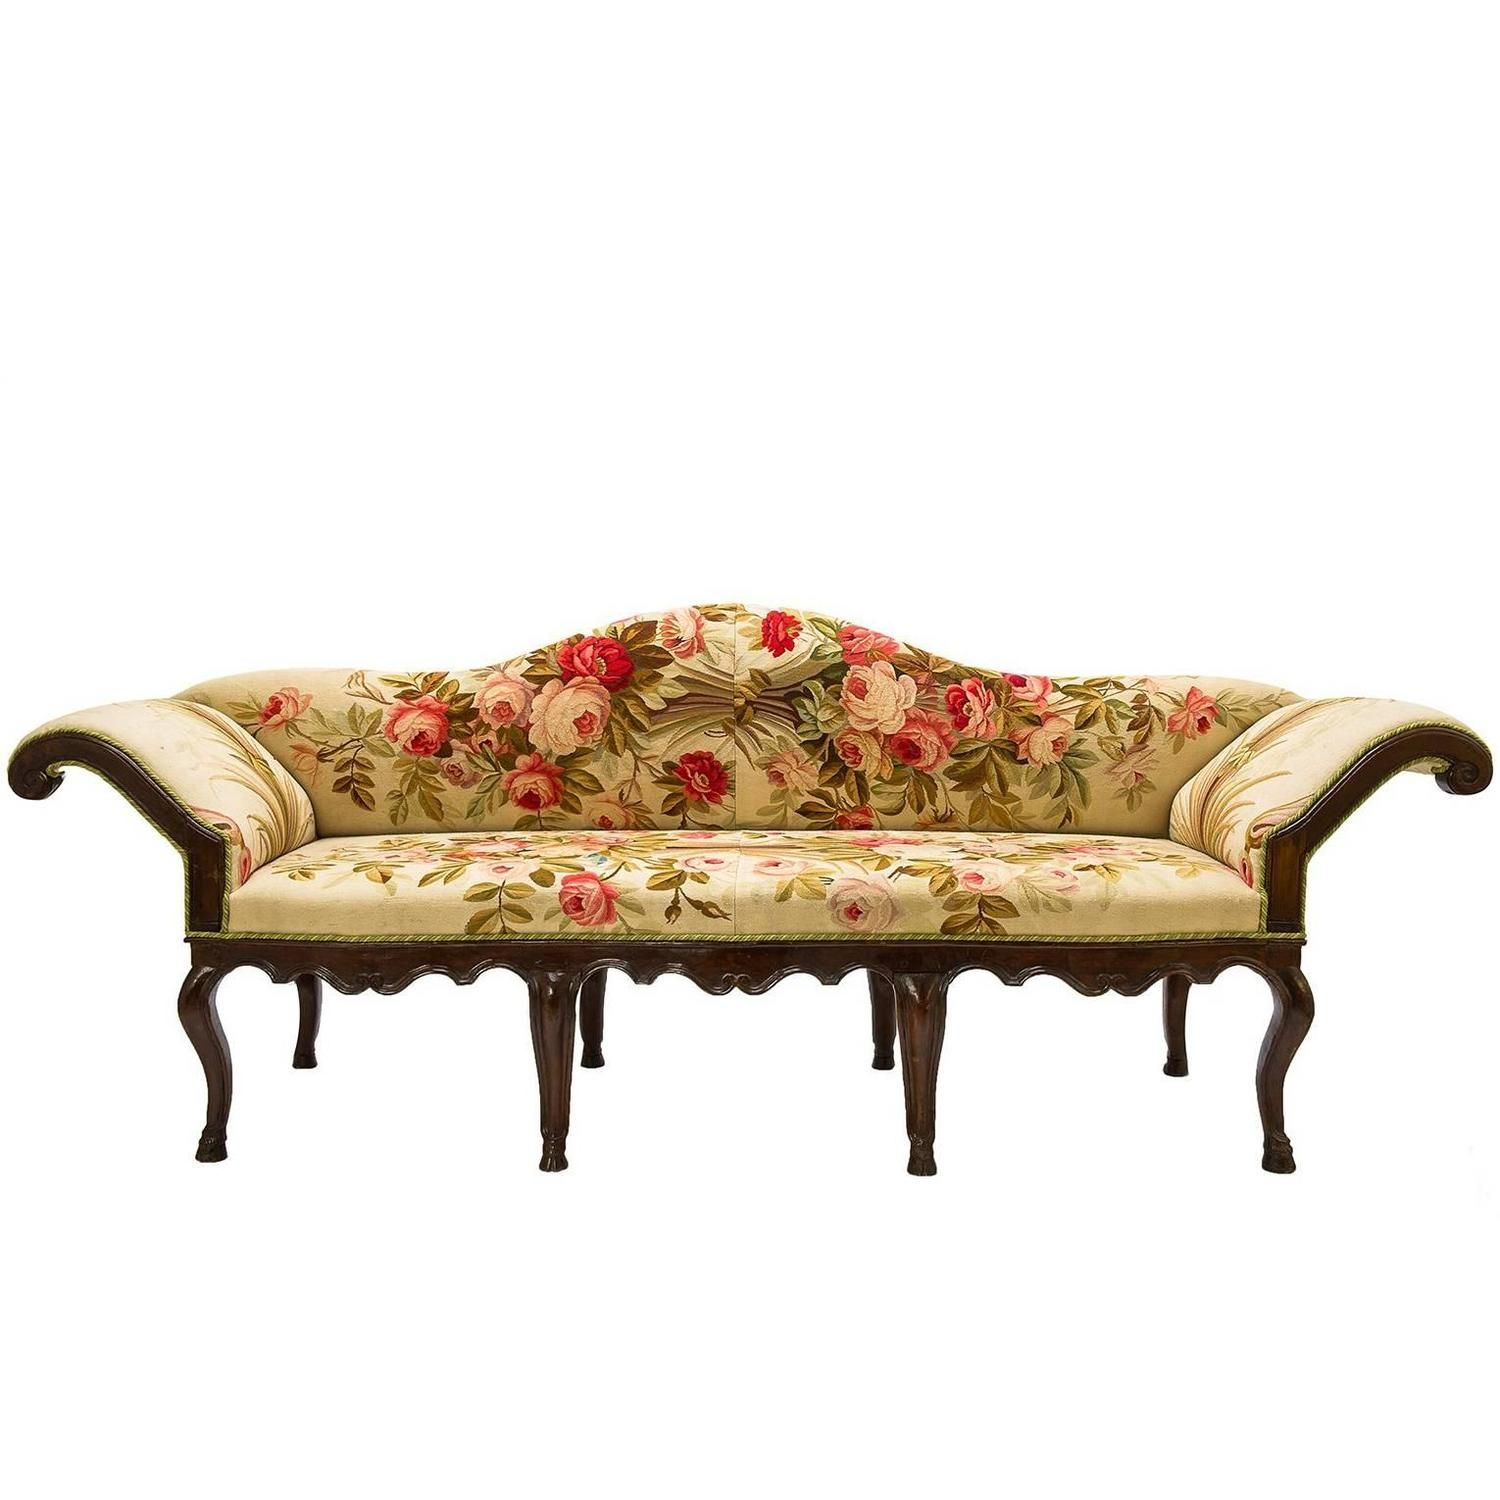 Antique Sofa Louis Xv Covered With Authentic Old Aubusson Tapestry Antique Sofa Leather Chair With Ottoman Vintage Sofa